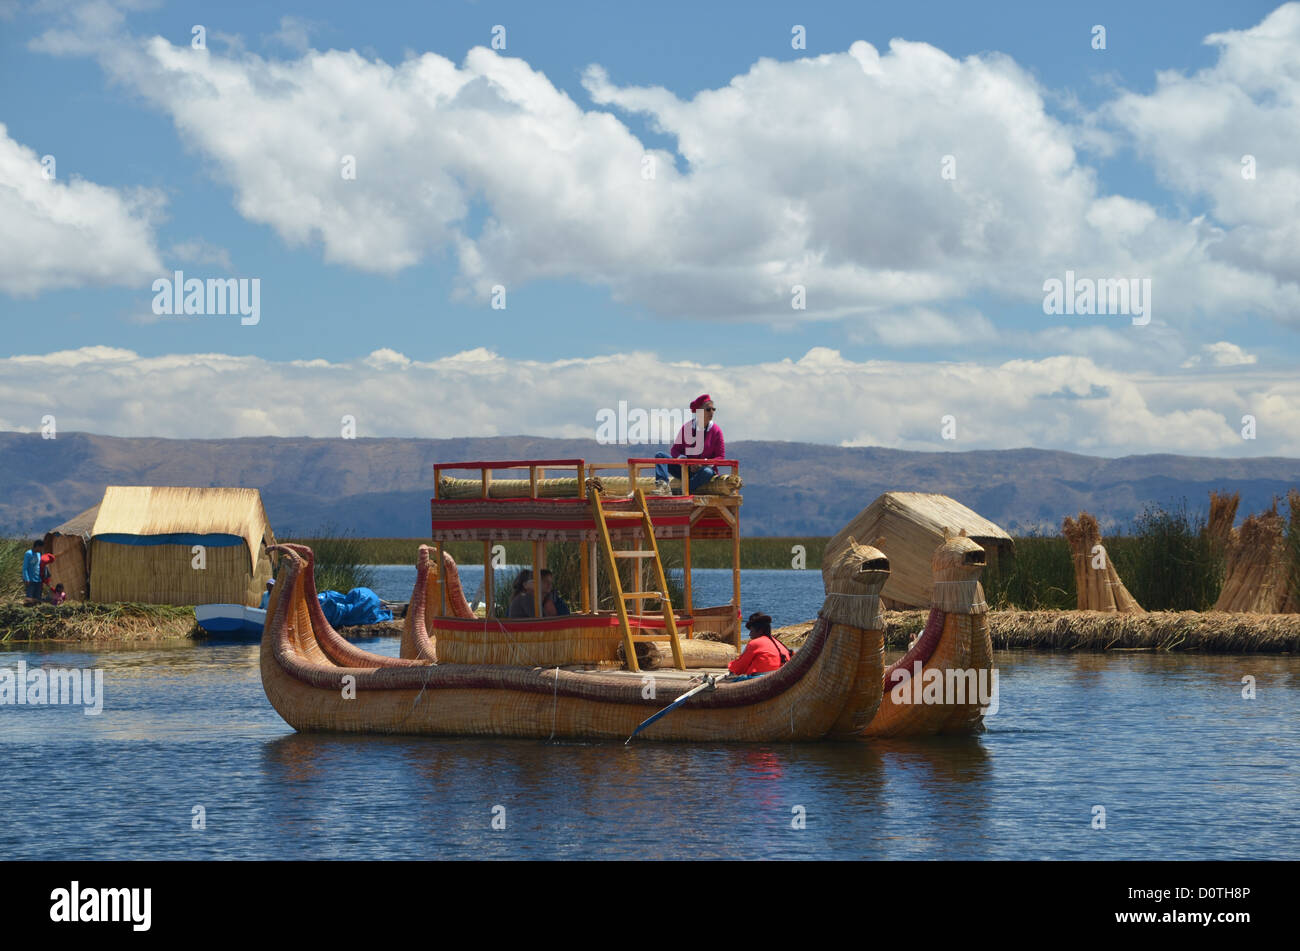 Traditional Tortora reed boat on Lake Titicaca, Peru Stock Photo